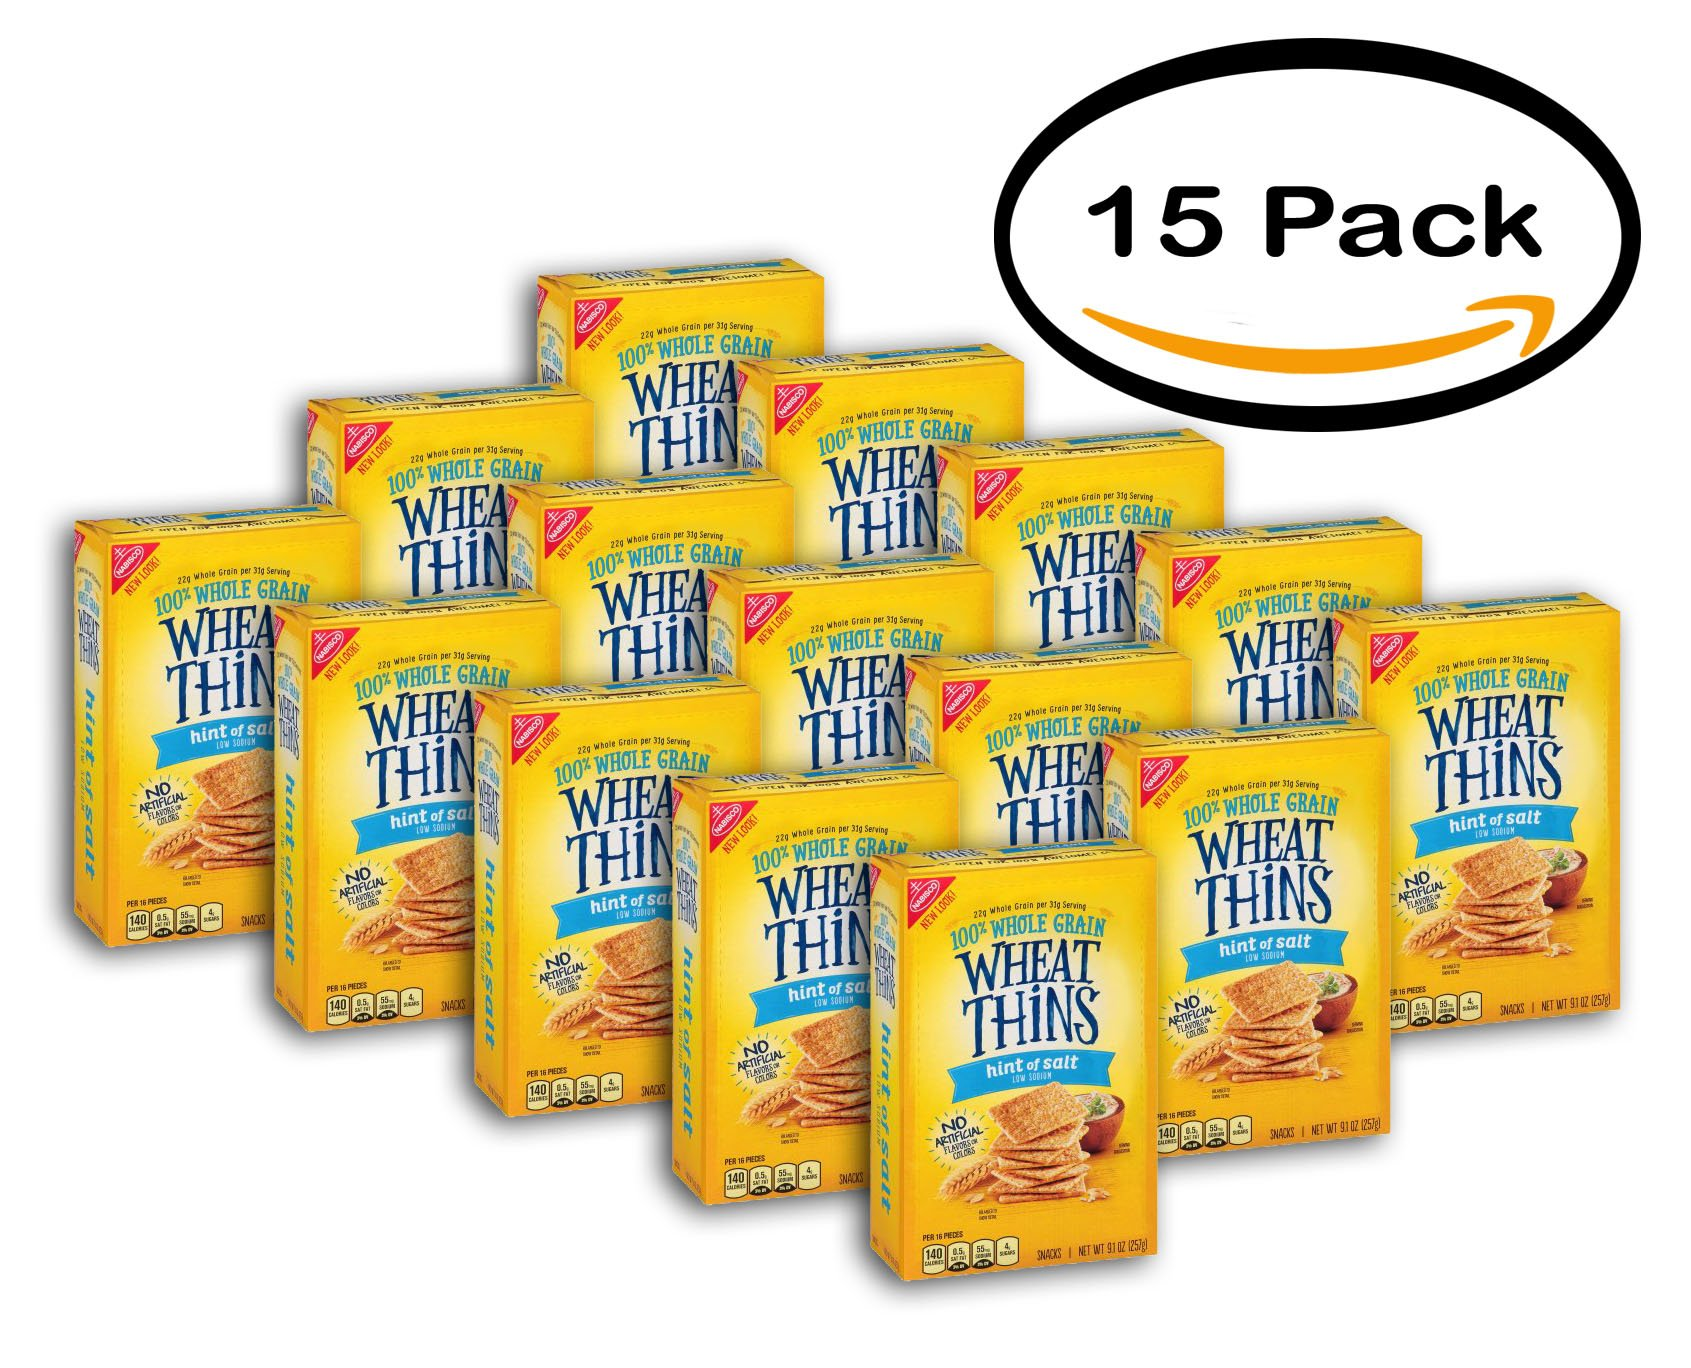 PACK OF 15 - Nabisco Wheat Thins Snacks, 9.1 OZ by Wheat Thins